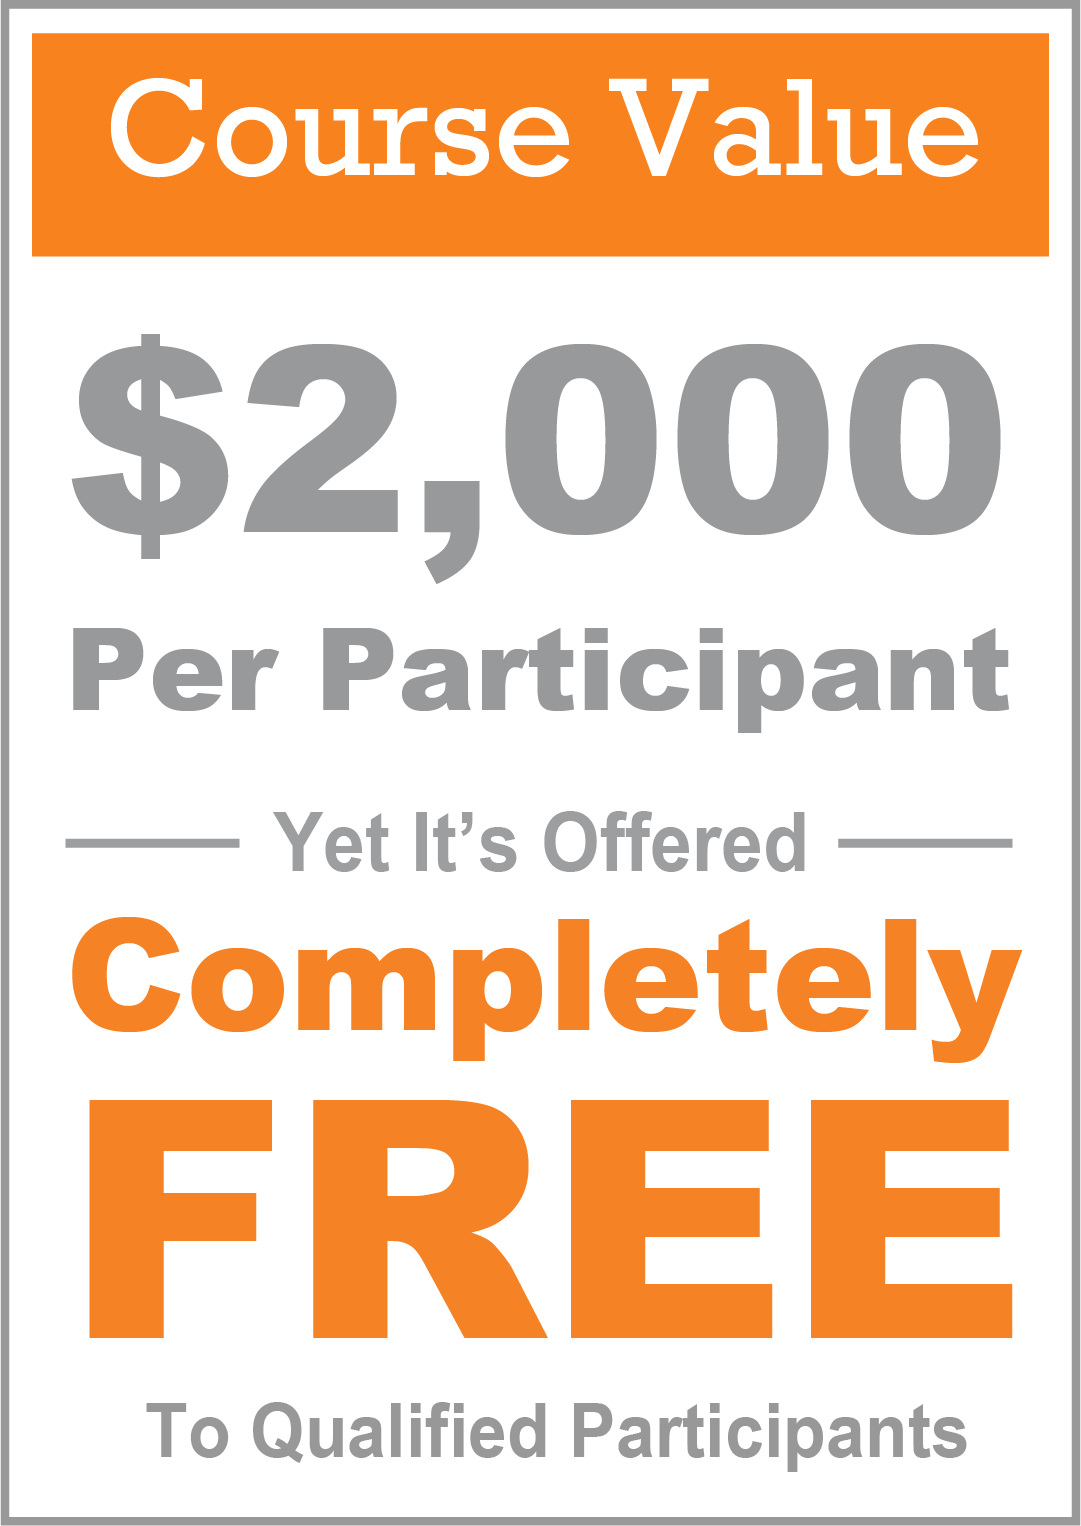 Course valued at $2000 per student yet it's offered completely free